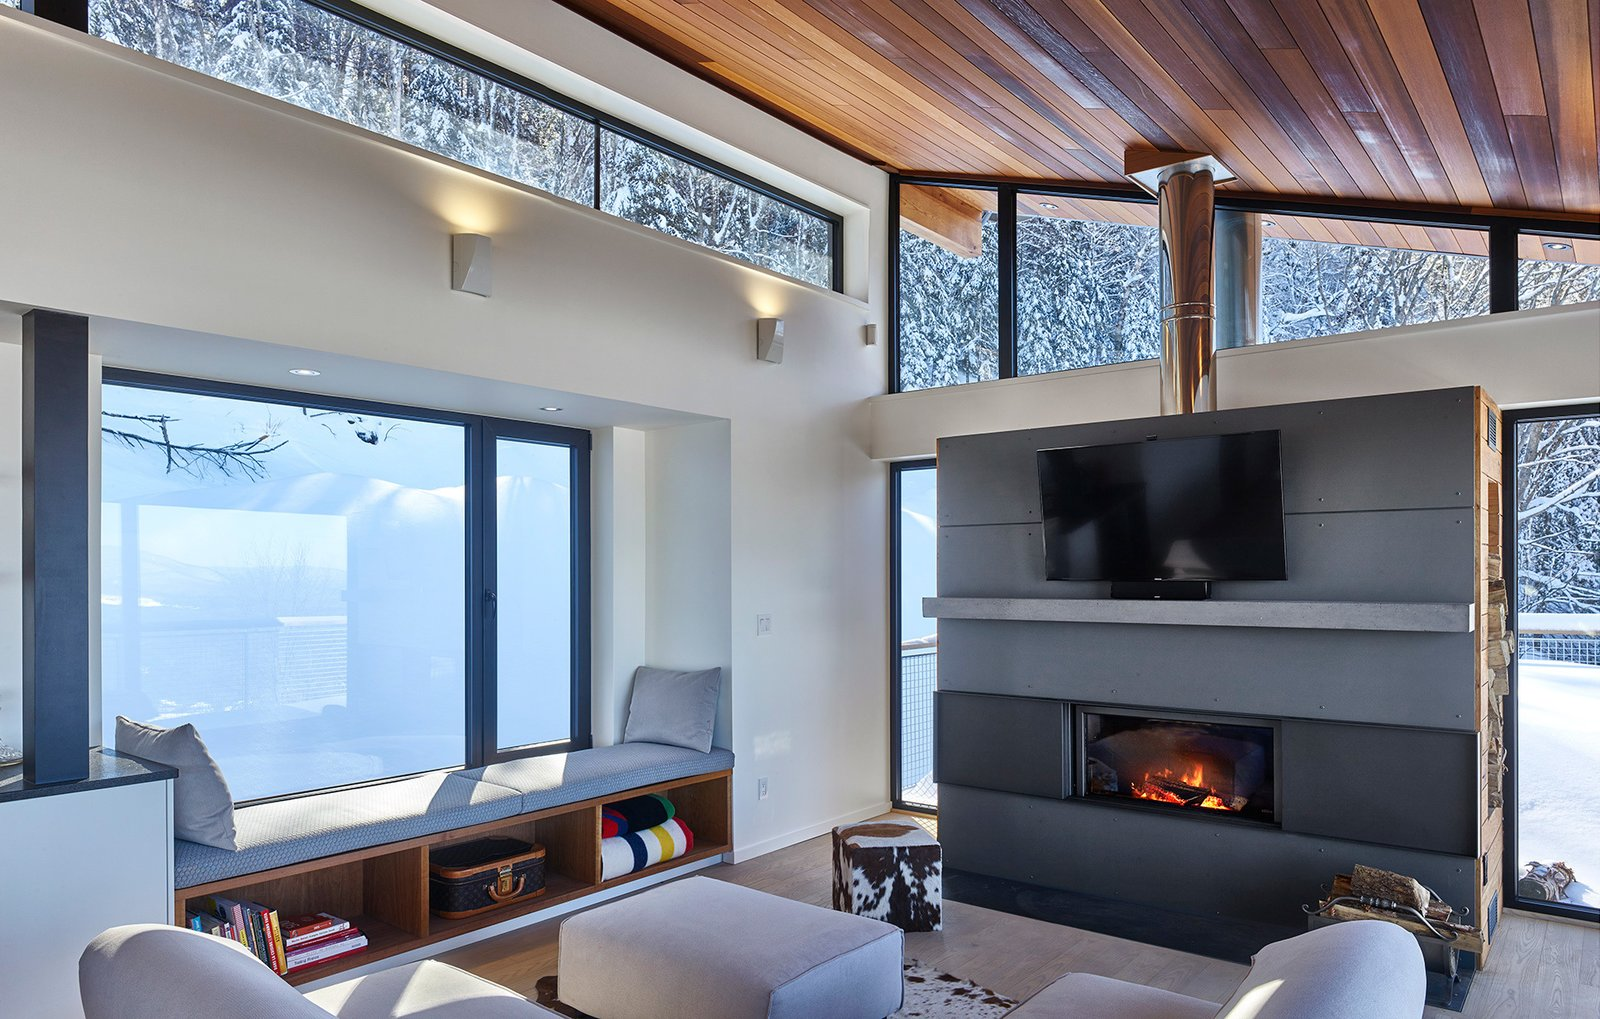 Living Room, Medium Hardwood Floor, Sofa, Wall Lighting, Accent Lighting, Wood Burning Fireplace, Sectional, Light Hardwood Floor, Ottomans, Bench, and Two-Sided Fireplace Stuv fireplace and window seat with an up mountain view.  Laurentian Ski Chalet by RobitailleCurtis